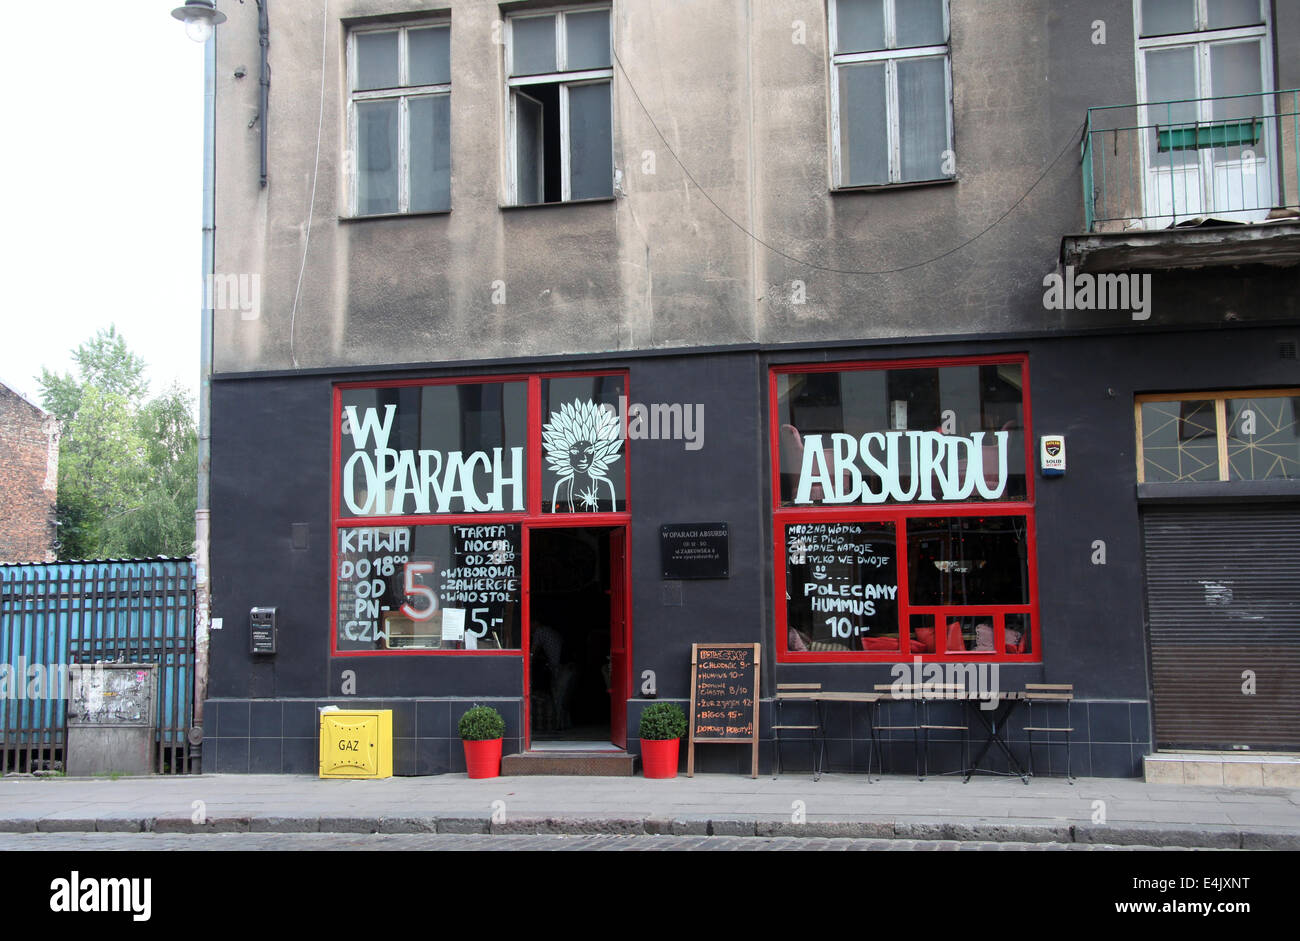 W Oparach Absurdu Cafe Bar in the trendy Praga district of Warsaw in Poland - Stock Image